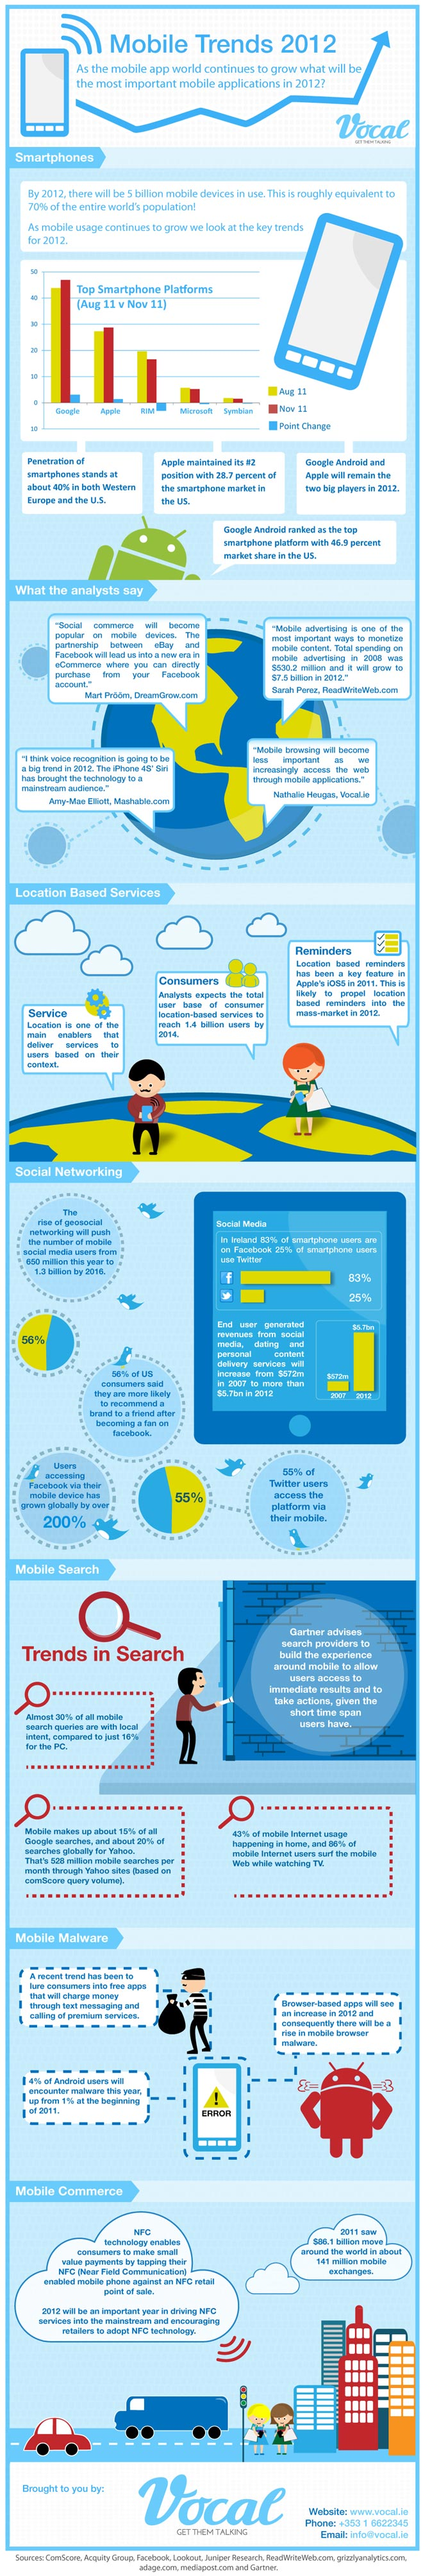 Mobile Trends 2012 from Infographicjournal